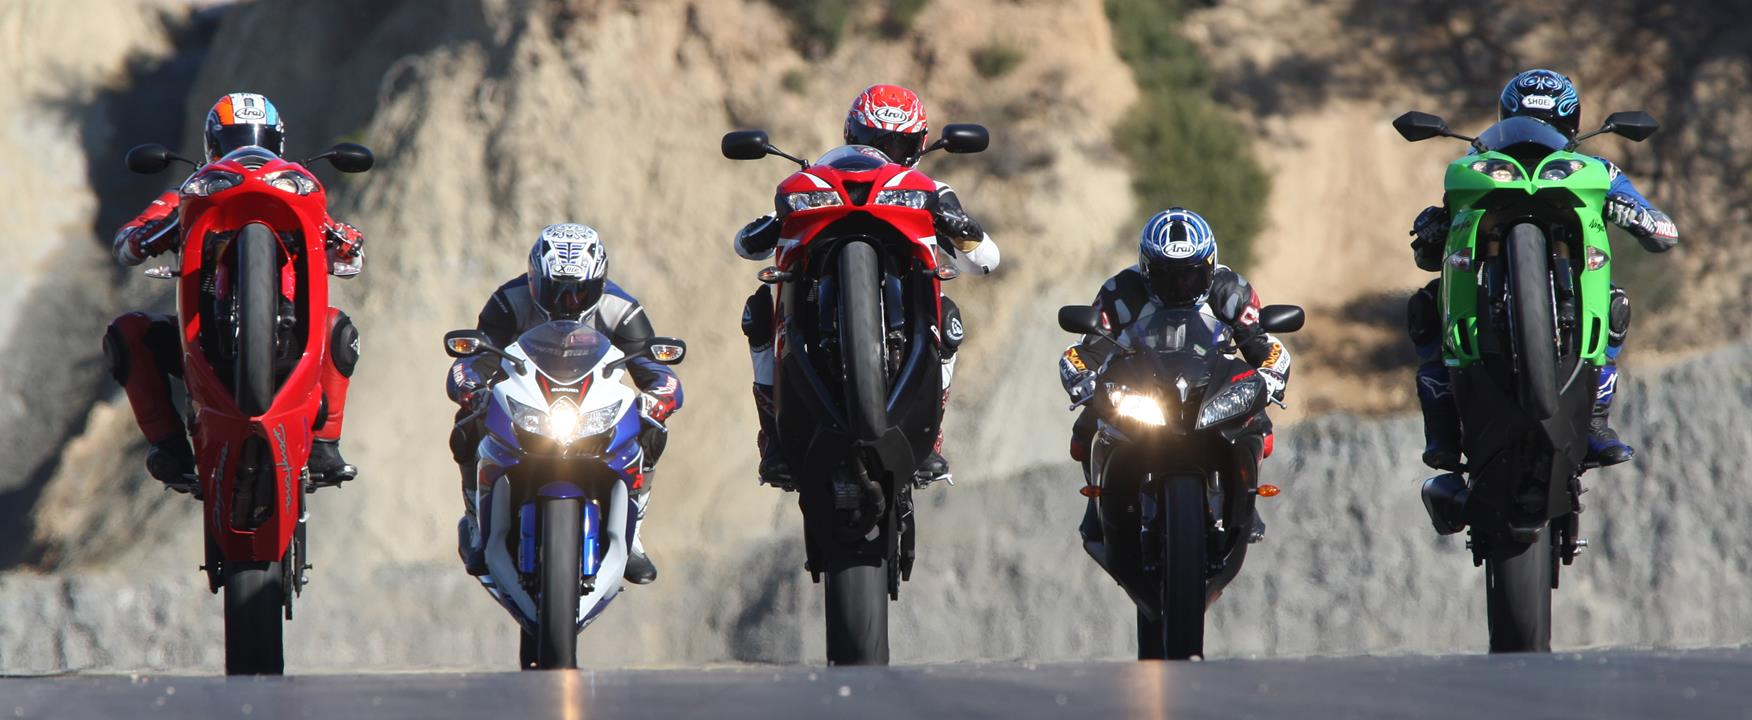 Supersport 600s head to head on track  MCN